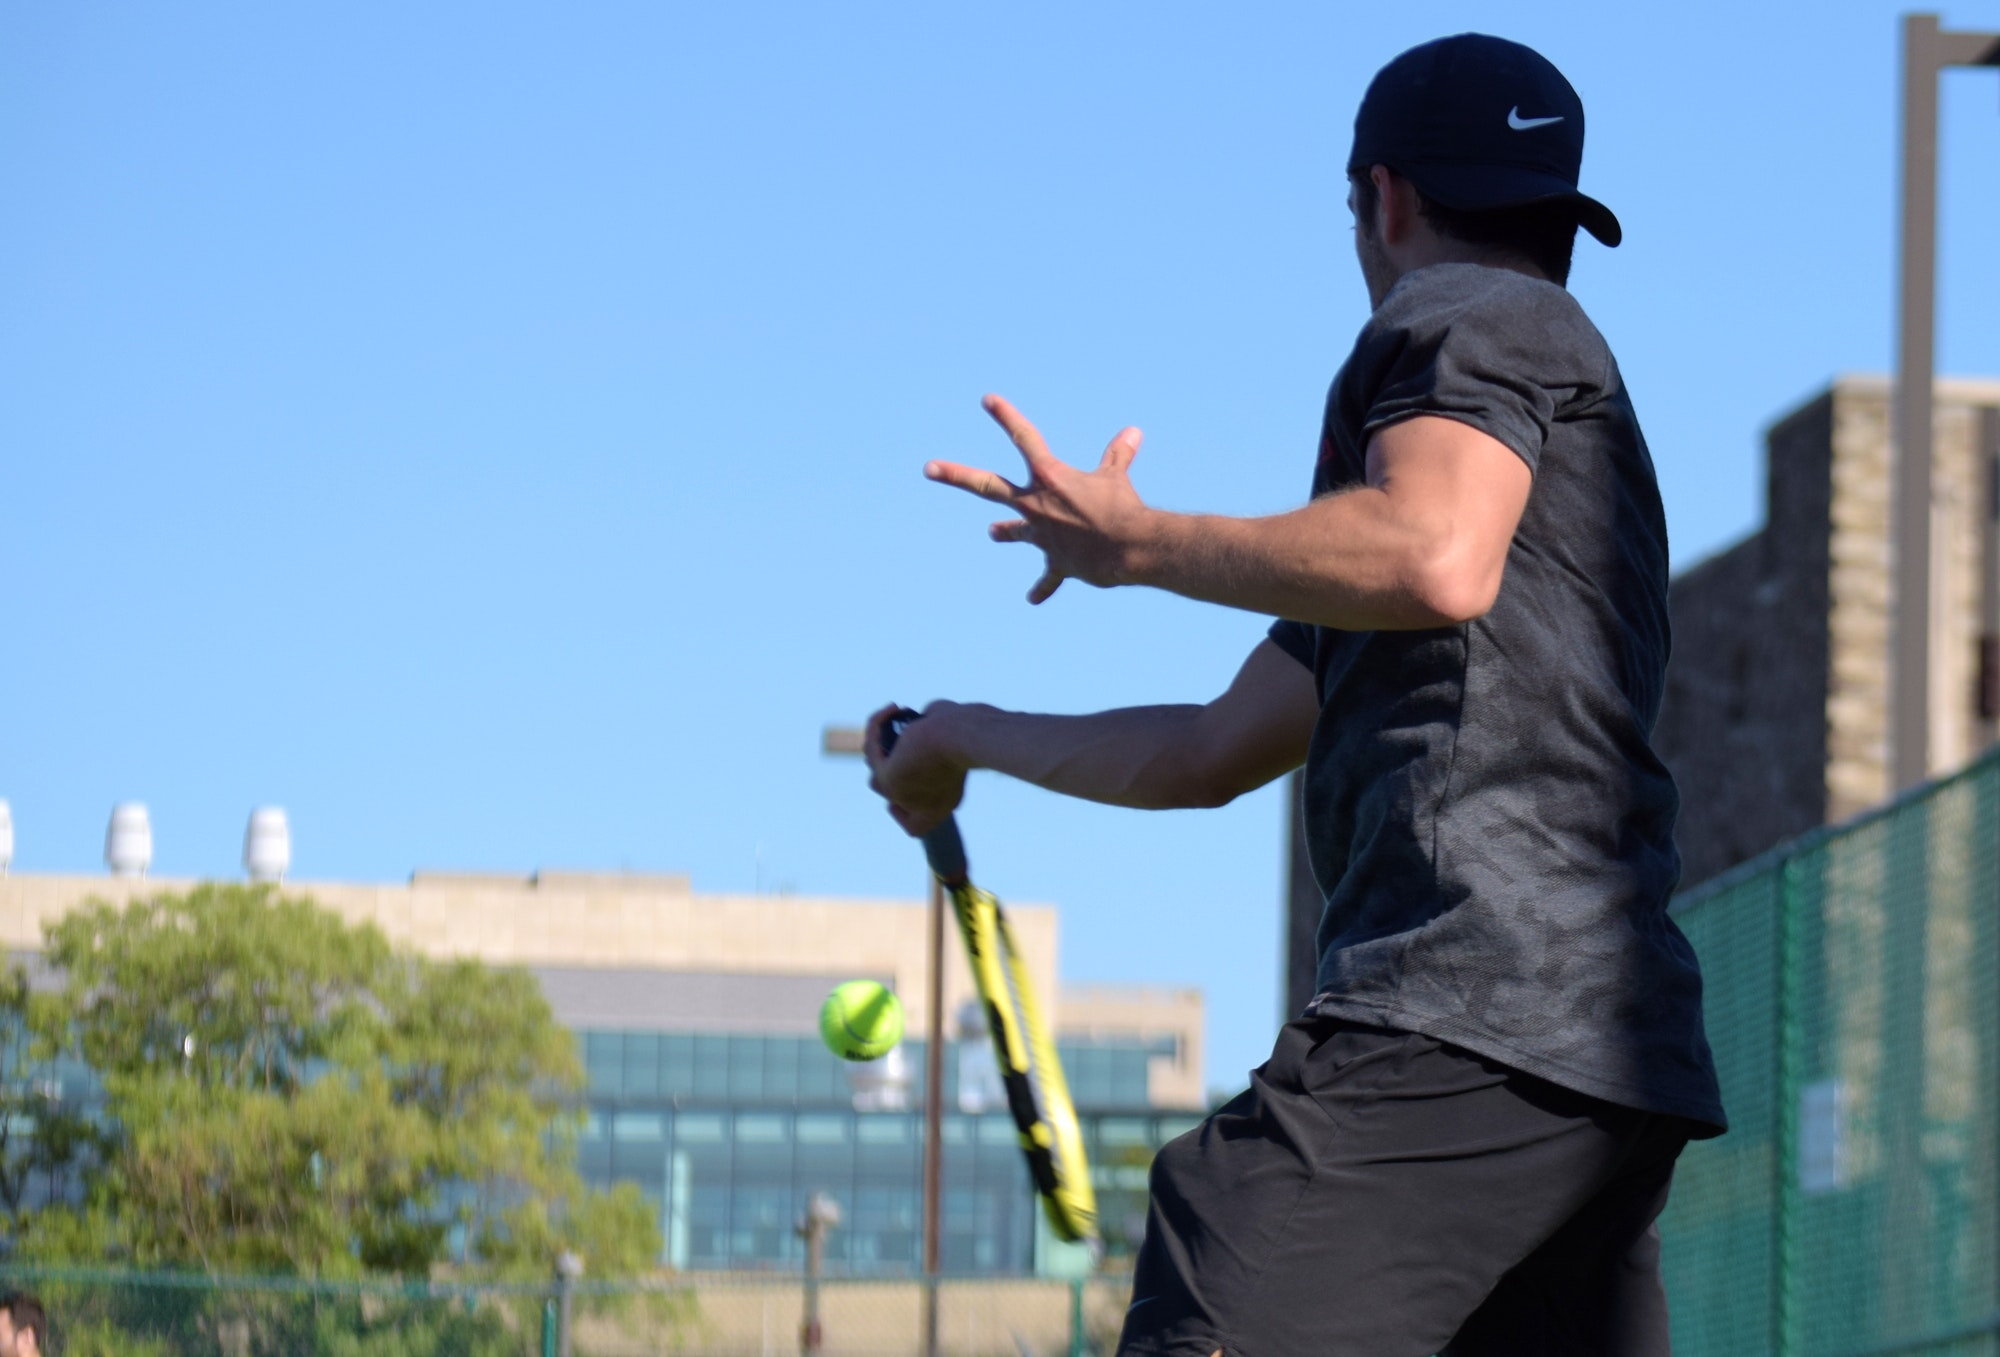 Ian T. teaches tennis lessons in Meadowbrook, PA